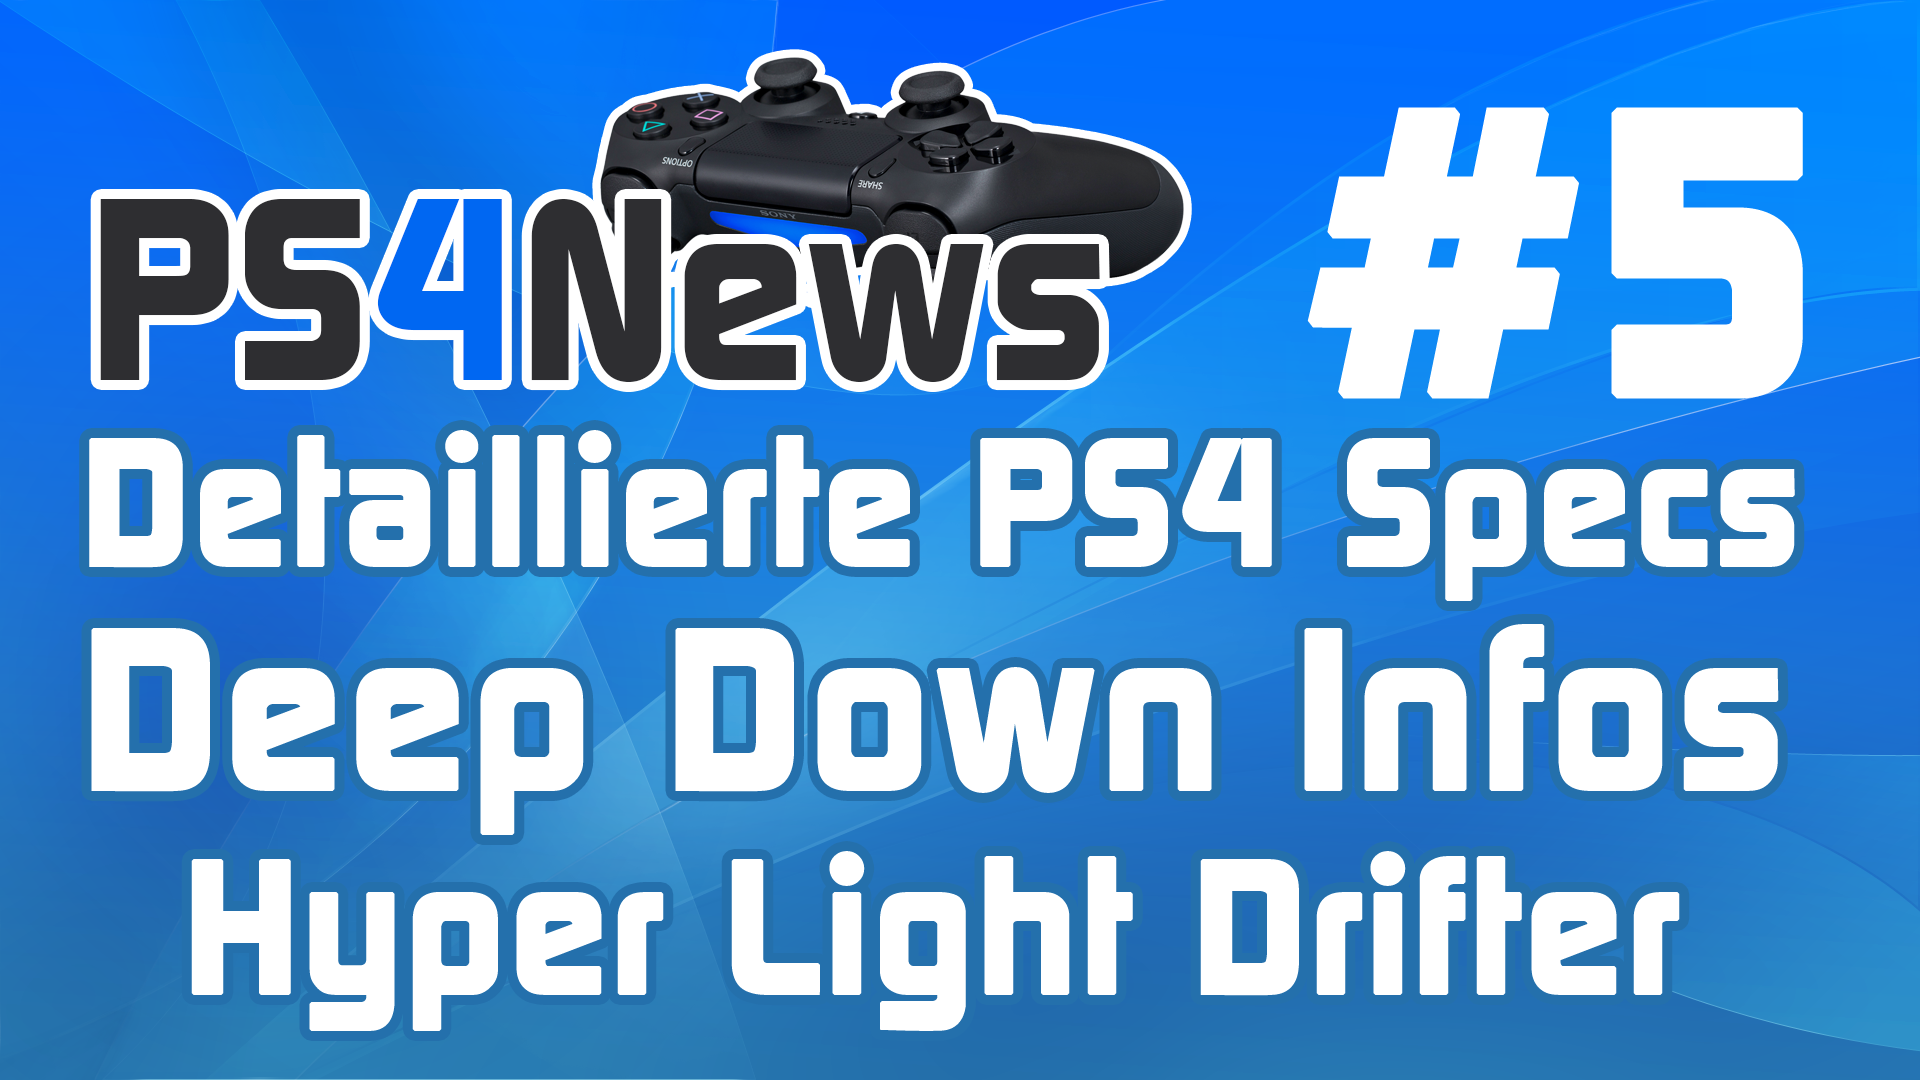 PS4 News #5 Detaillierte PS4 Specs – Deep Down News – Hyper Light Drifter